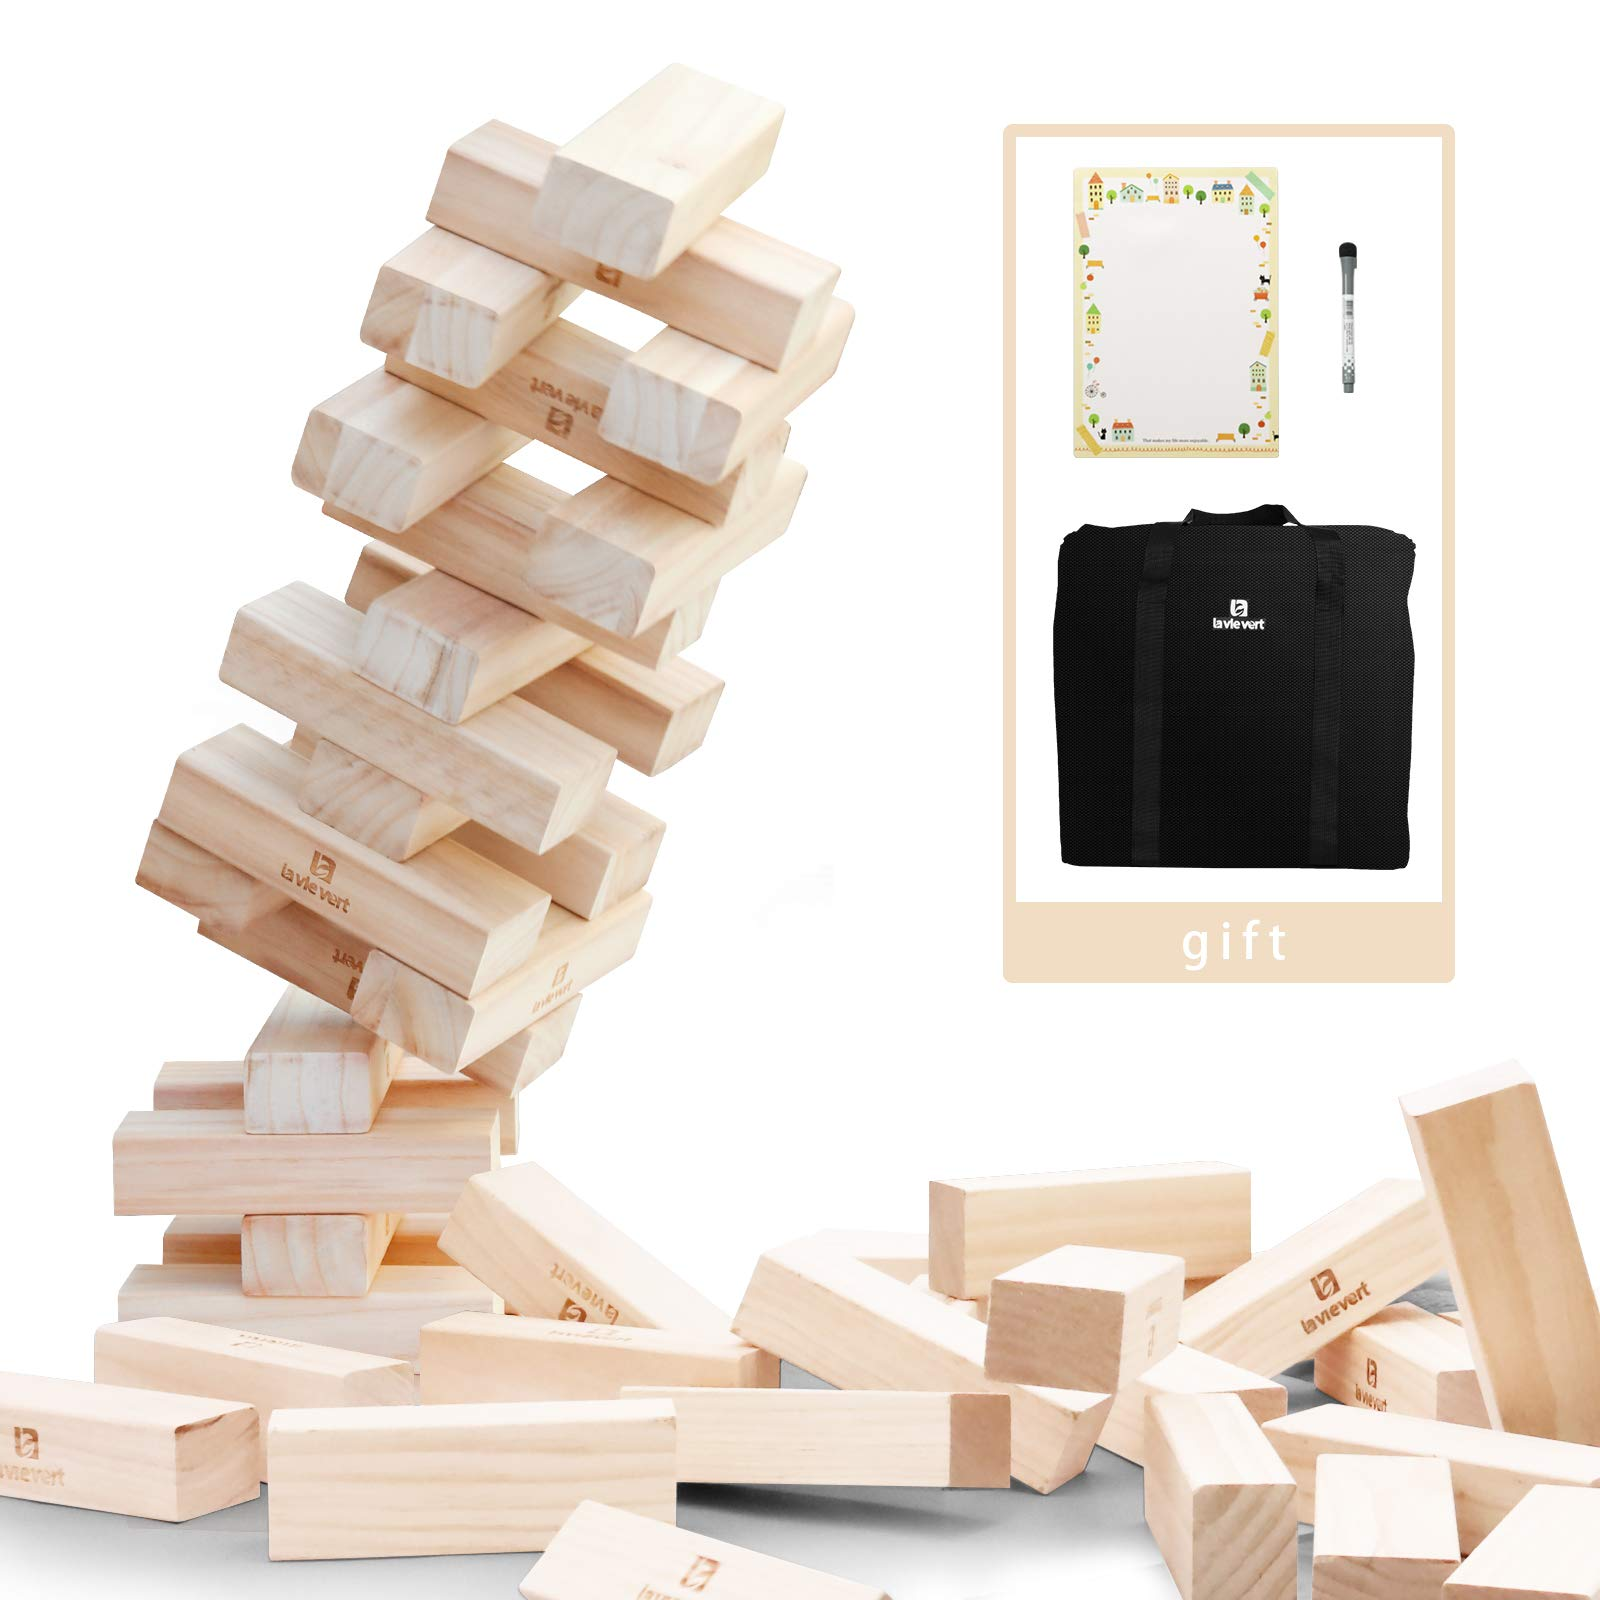 Lavievert Giant Toppling Timbers Wooden Blocks Game Stacking Blocks Stacking Tower a Fun Outdoor, Lawn, Yard Game - 54 Pieces (Stacks up to 5+ Feet. Ages 10+)